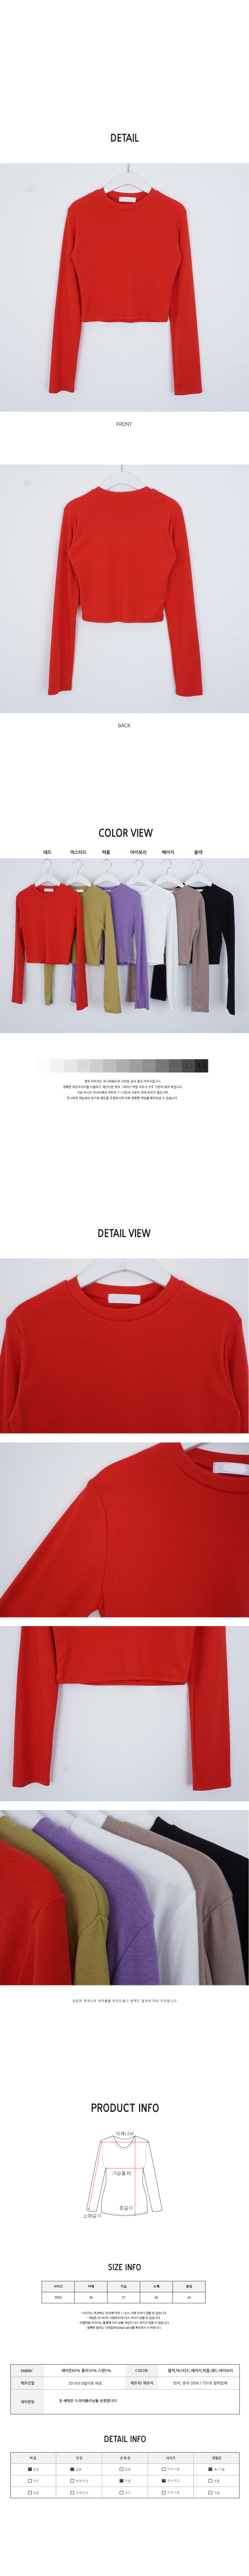 Scroll cropped t-shirt